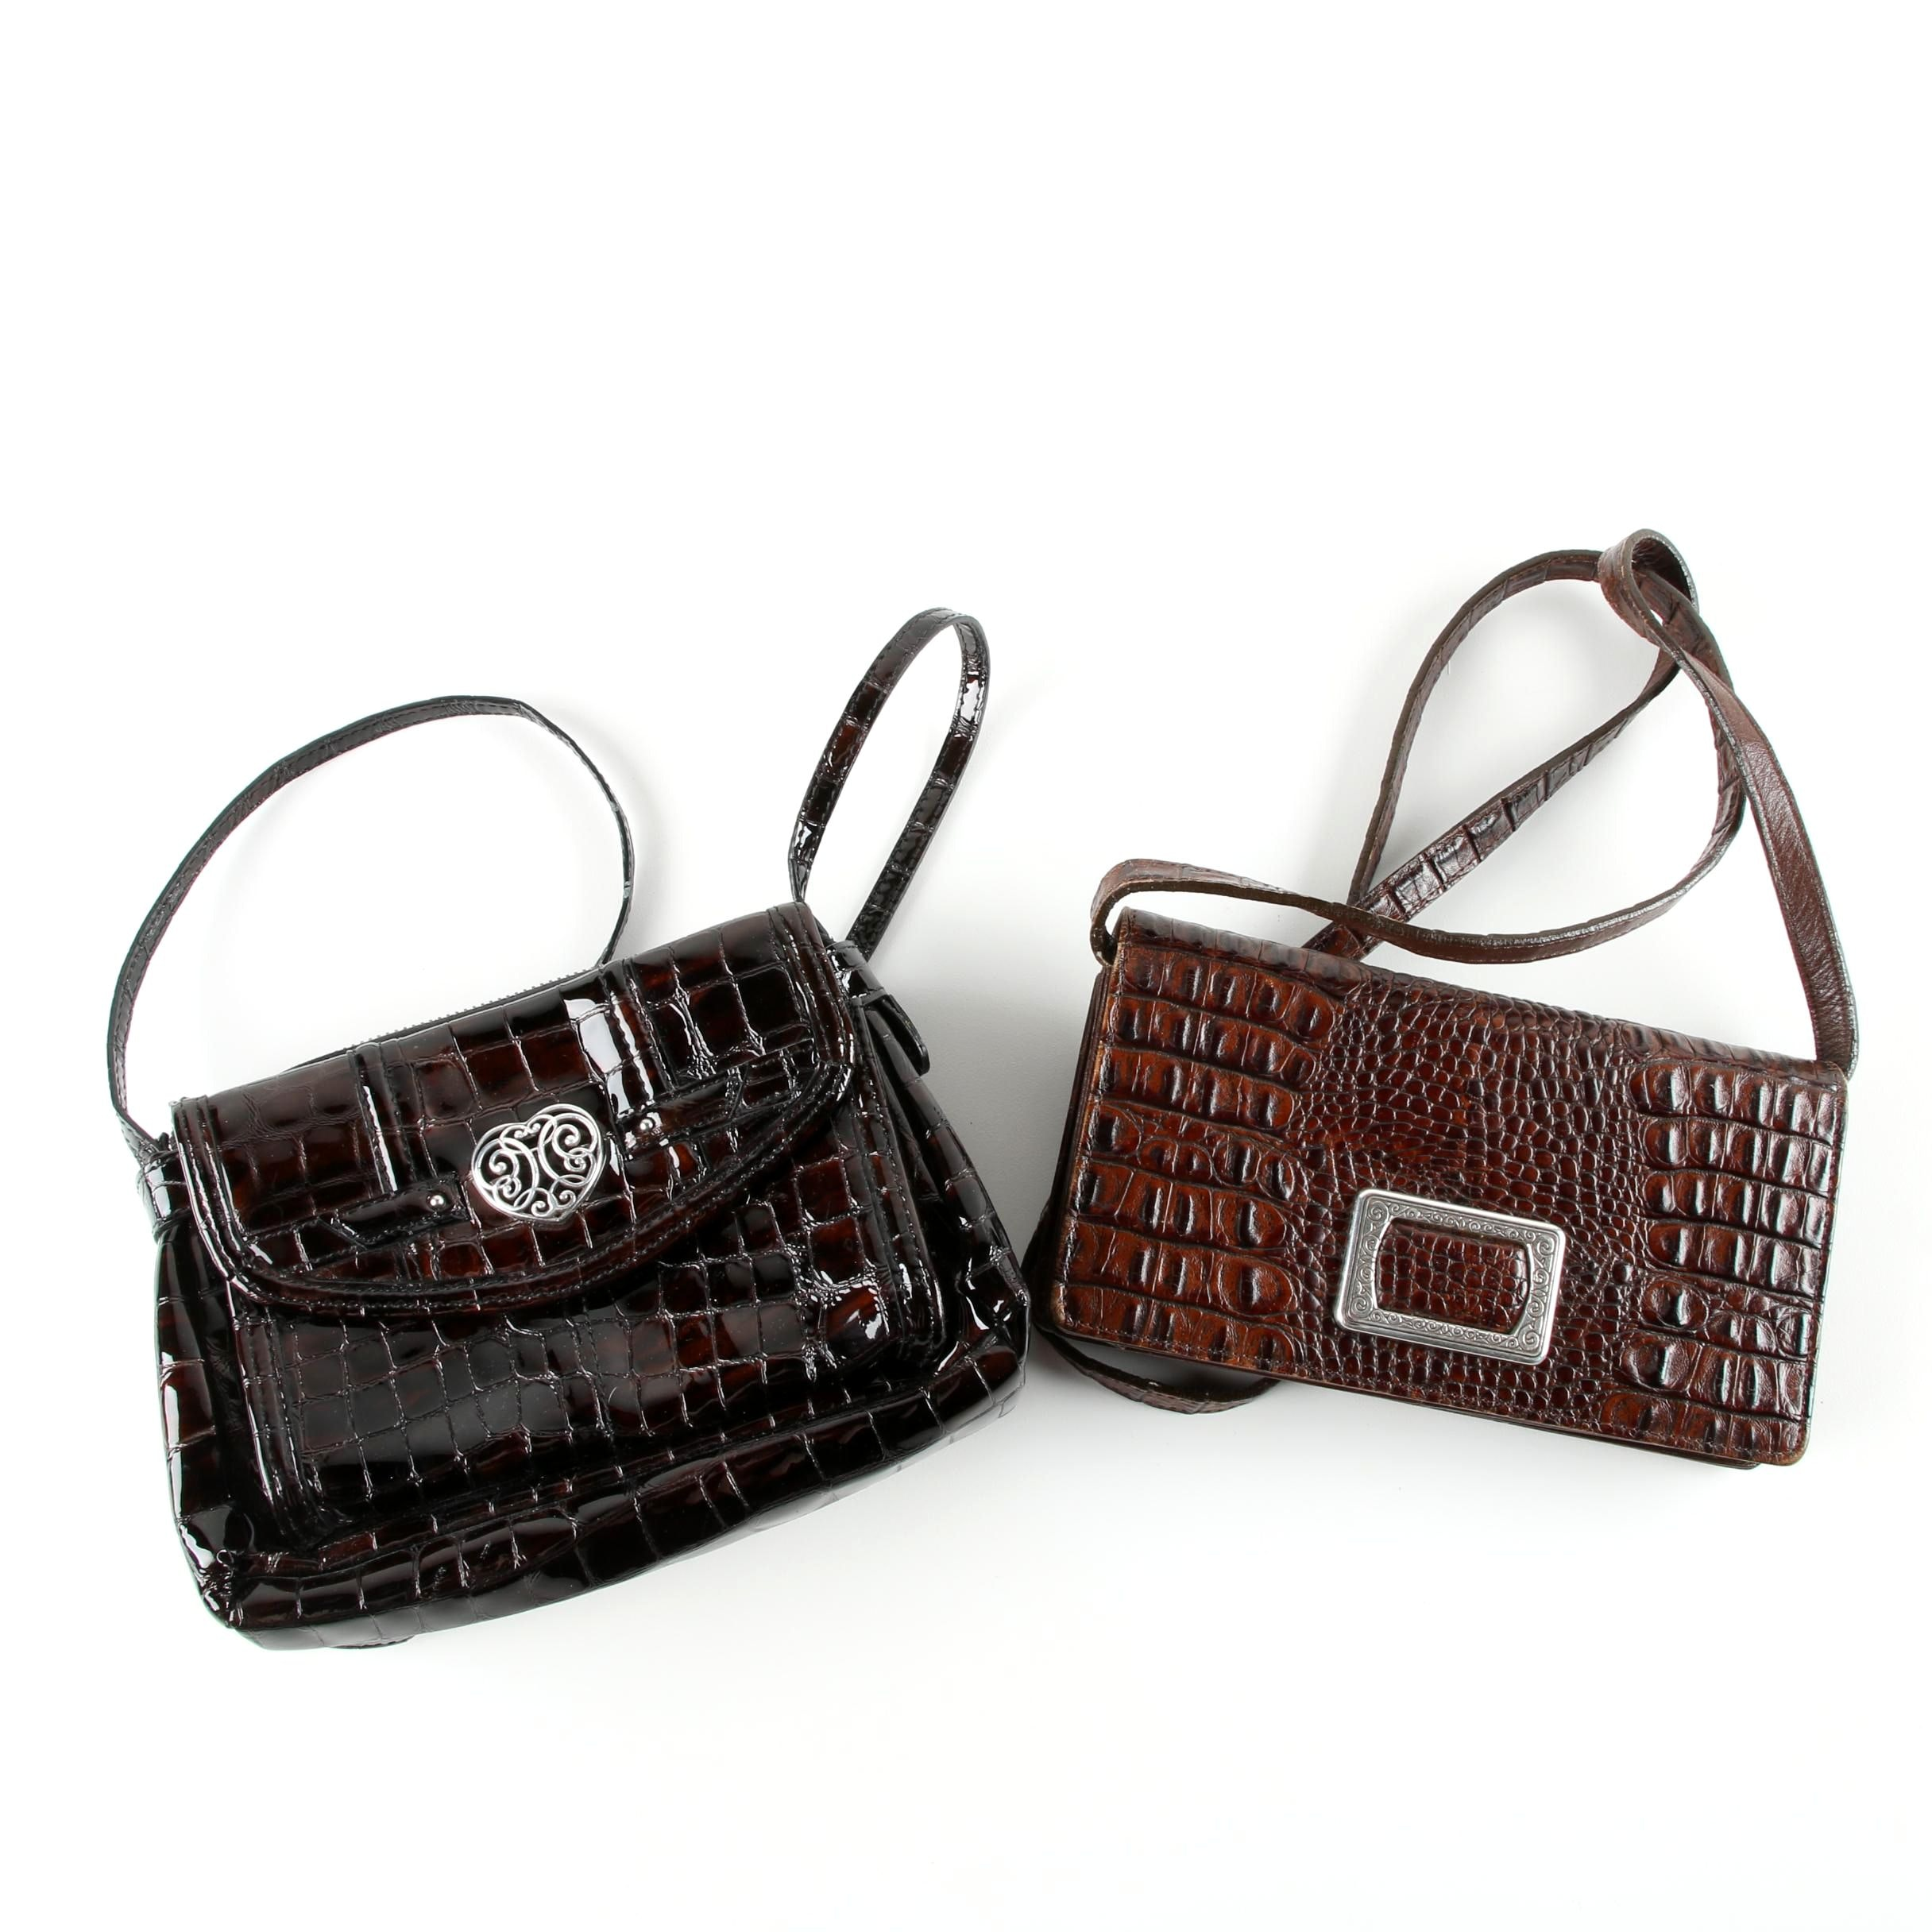 Brighton Embossed Reptile Patterned Brown Leather Handbags